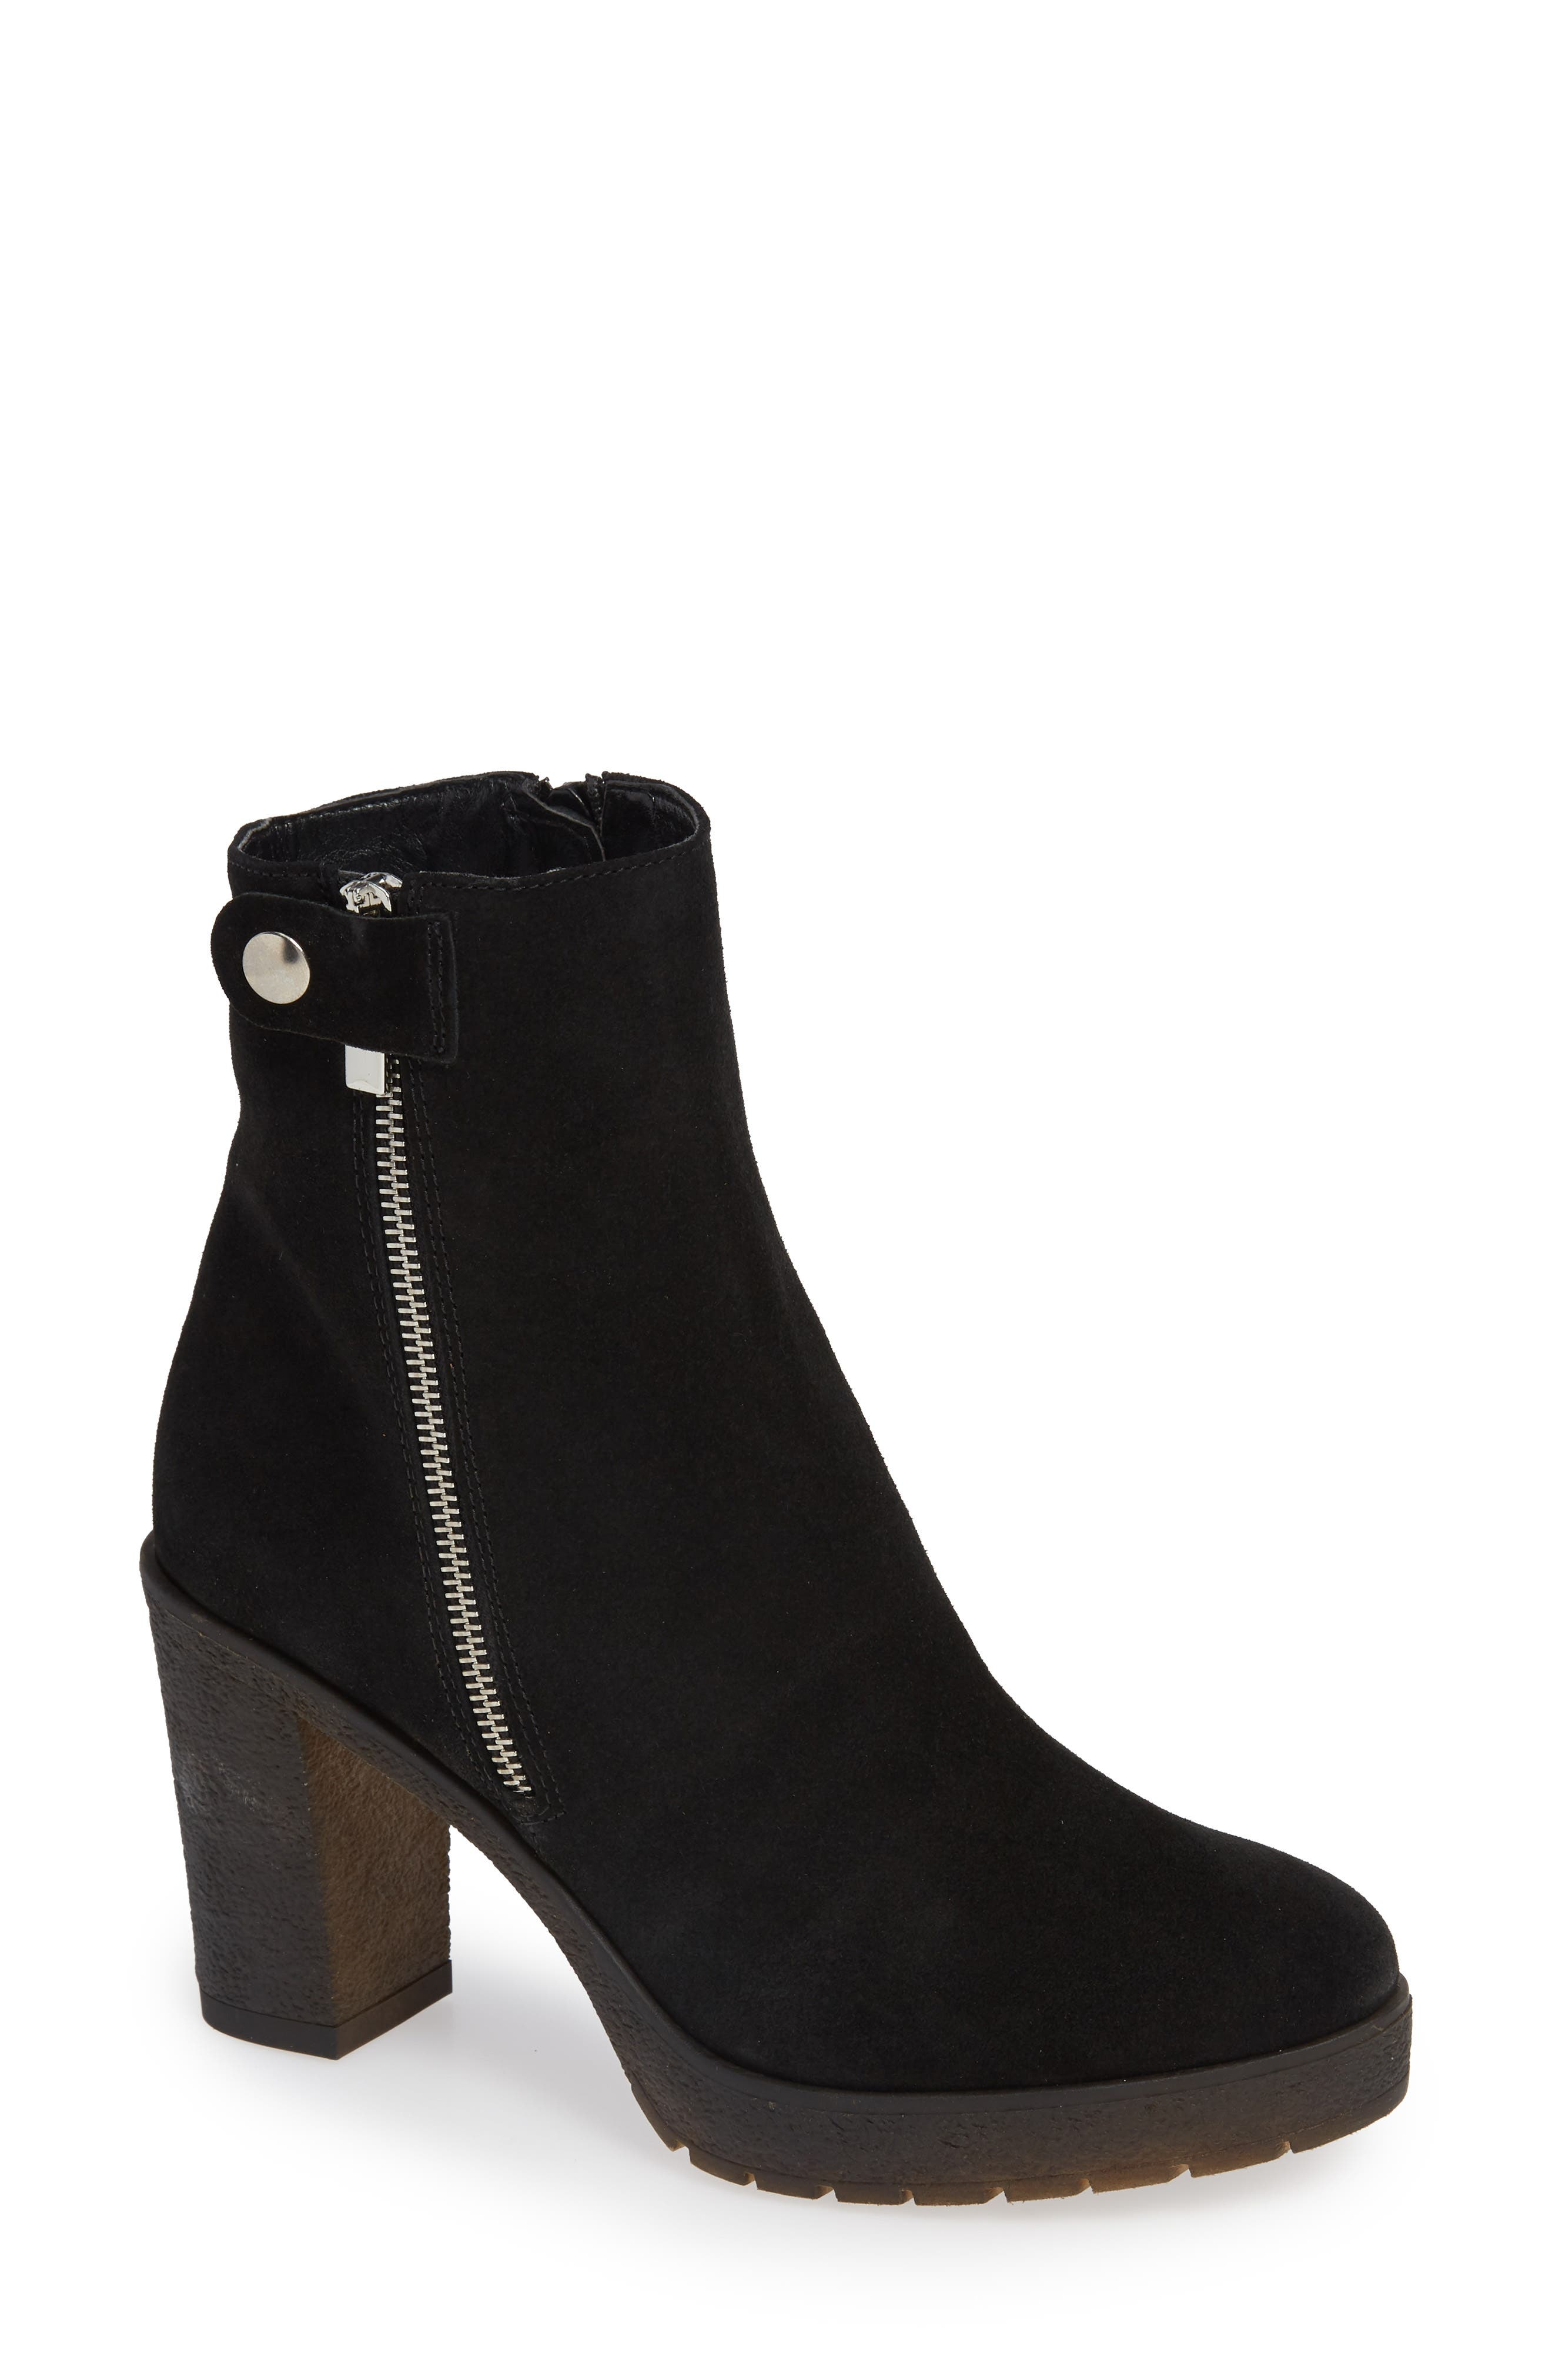 AMALFI BY RANGONI Lupetto Side Zip Bootie in Black Suede